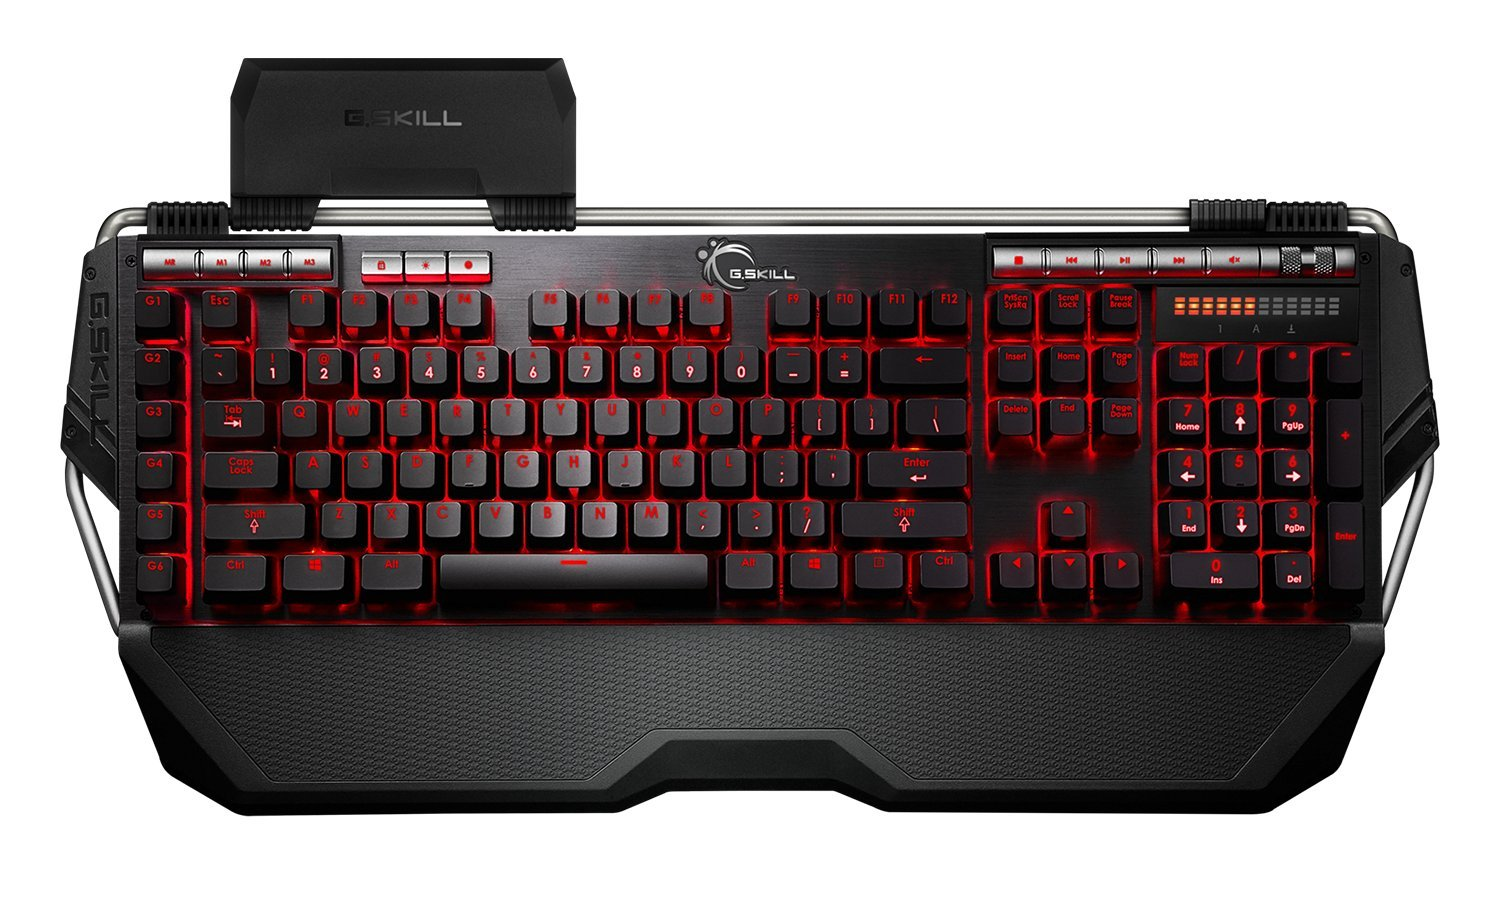 Teclado Mecanico : G.SKILL RIPJAWS KM780 MX Cherry MX Brown